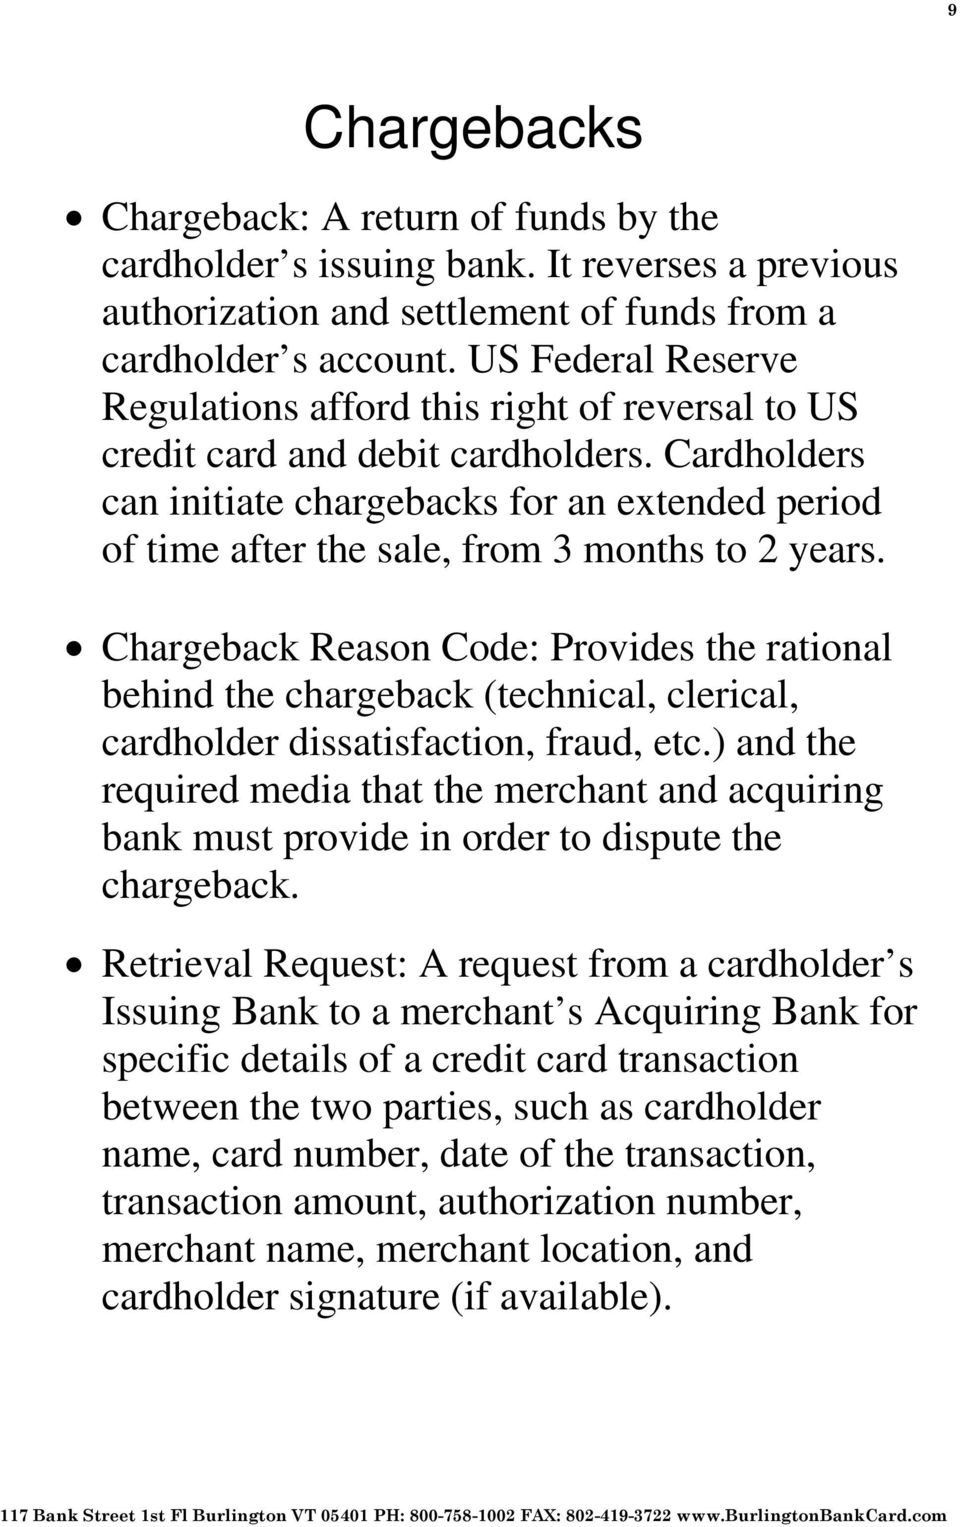 Cardholders can initiate chargebacks for an extended period of time after the sale, from 3 months to 2 years.